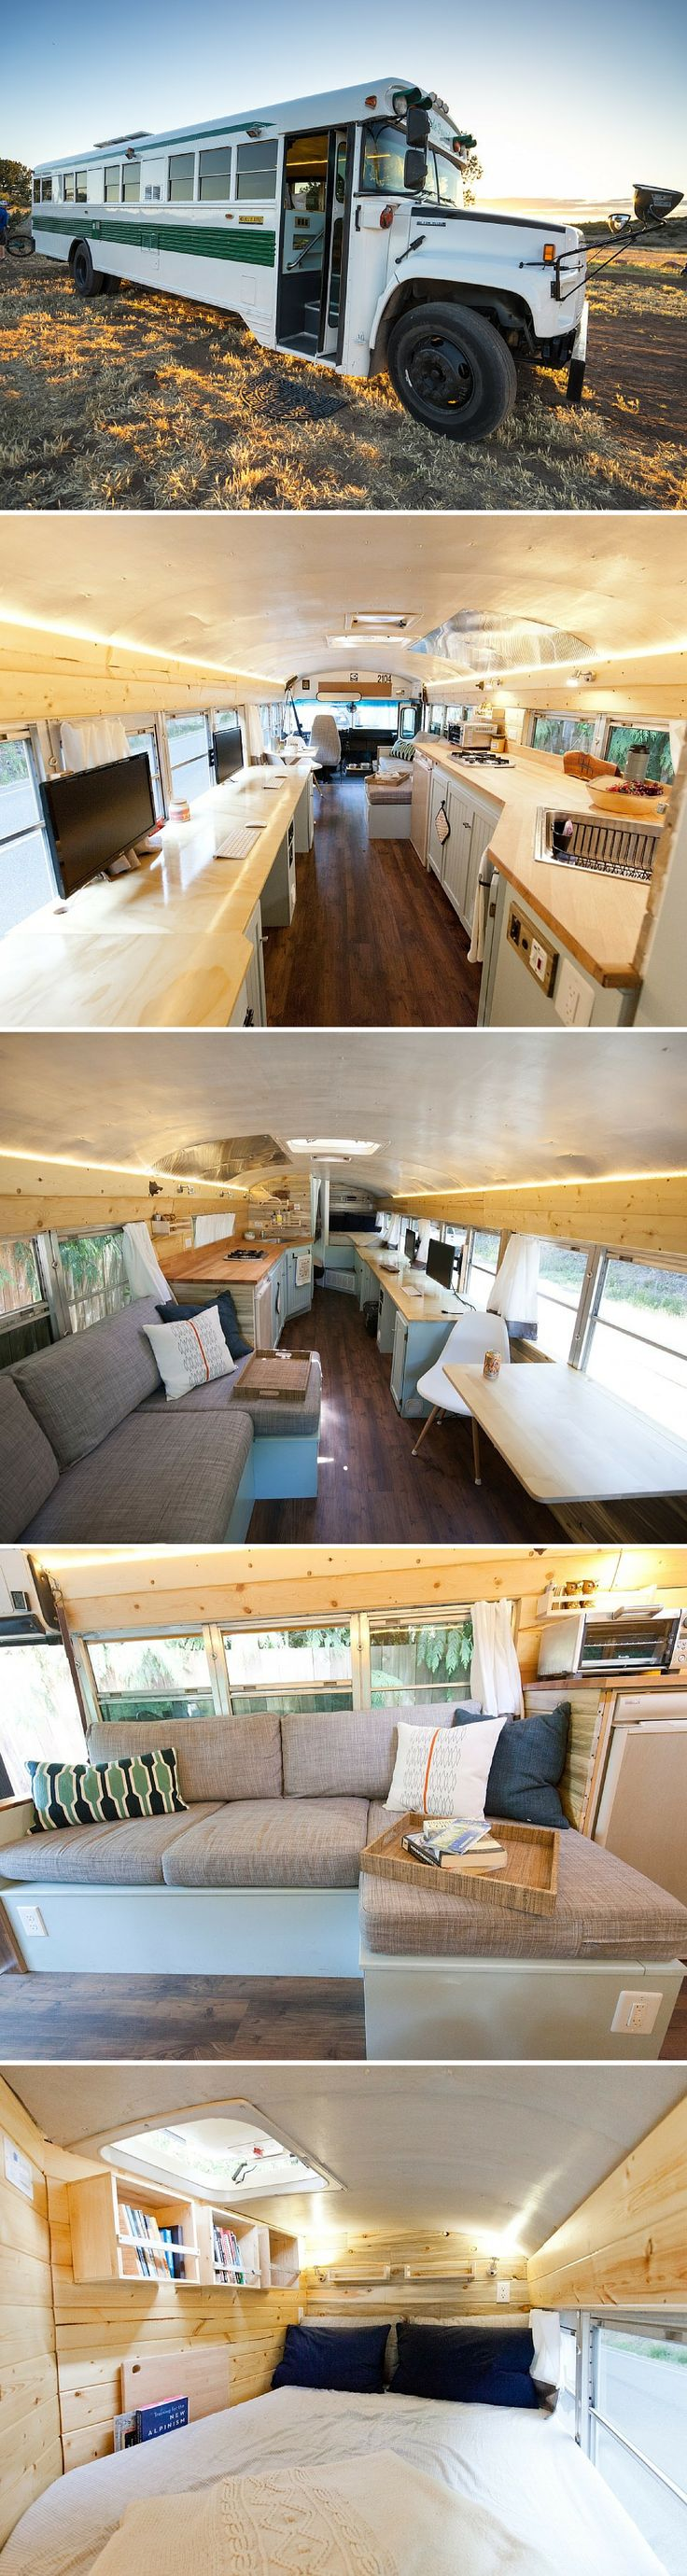 Bucket list!!  A former school bus transformed into a beautiful home and office on wheels.